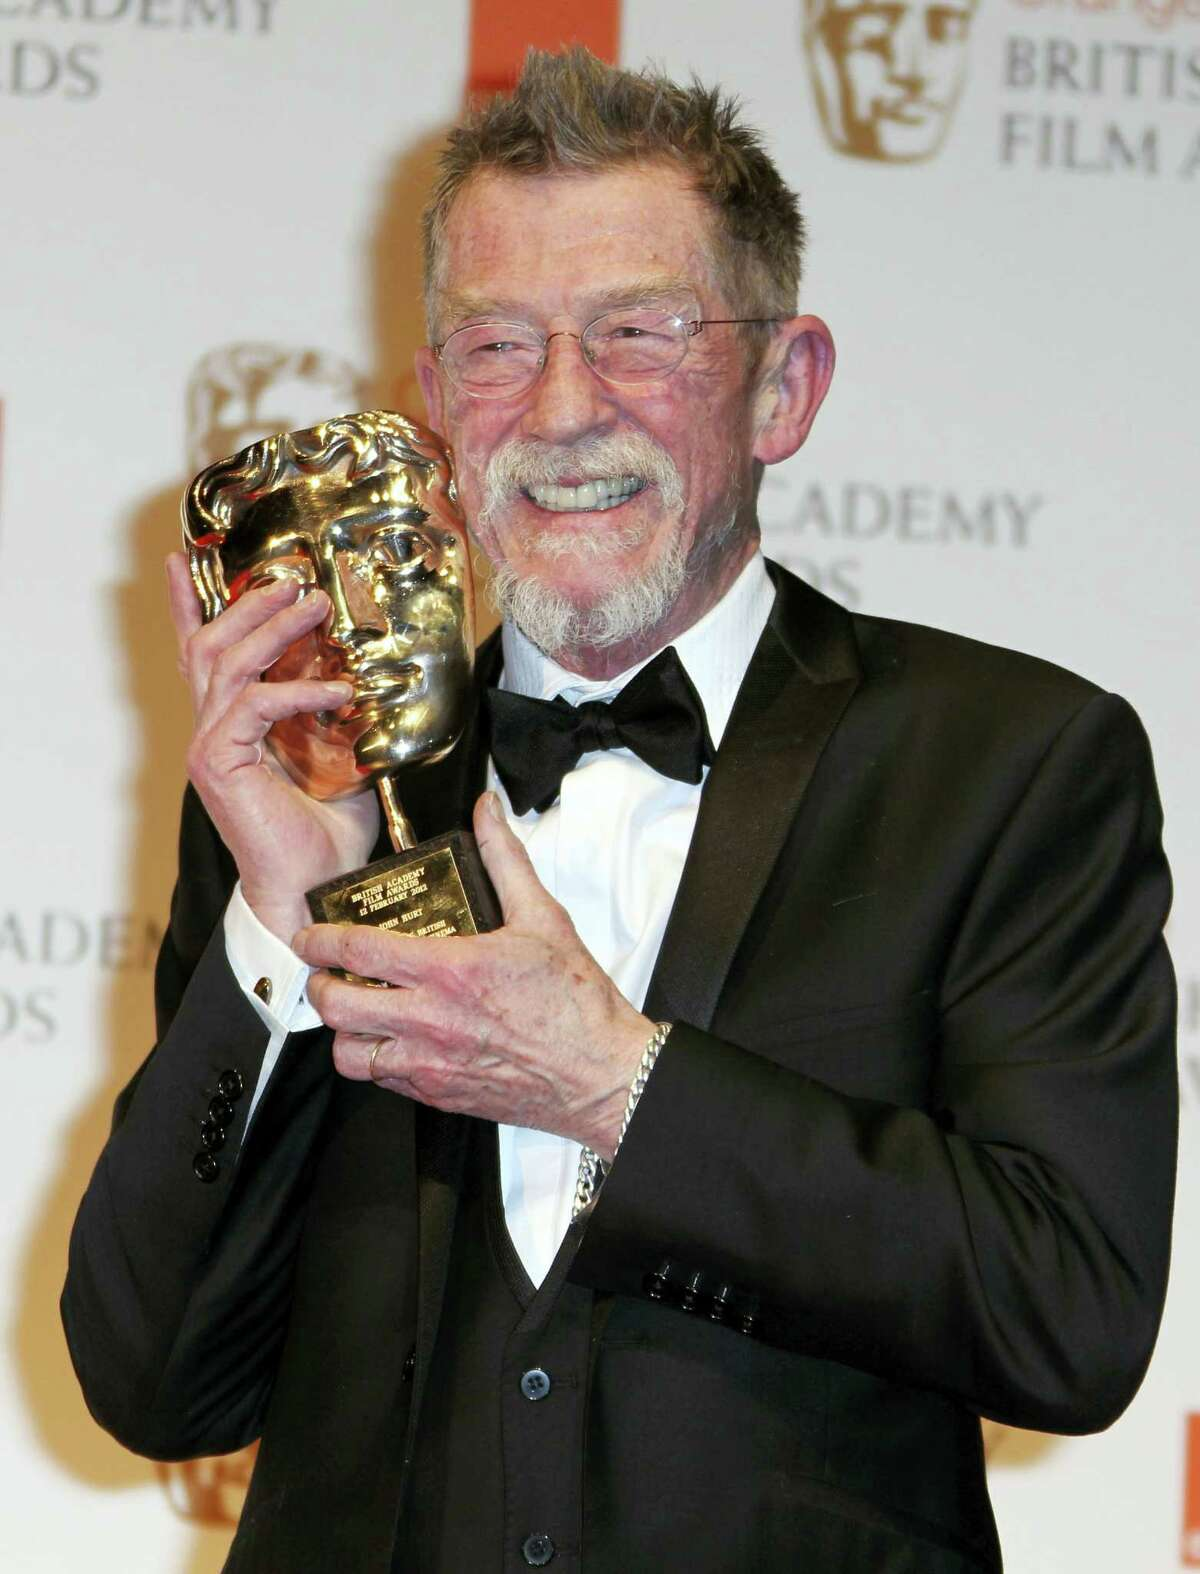 """Actor Sir John Hurt posing with his award for """"Outstanding Contribution to Cinema"""" backstage at the BAFTA Film Awards 2012, at The Royal Opera House in London."""